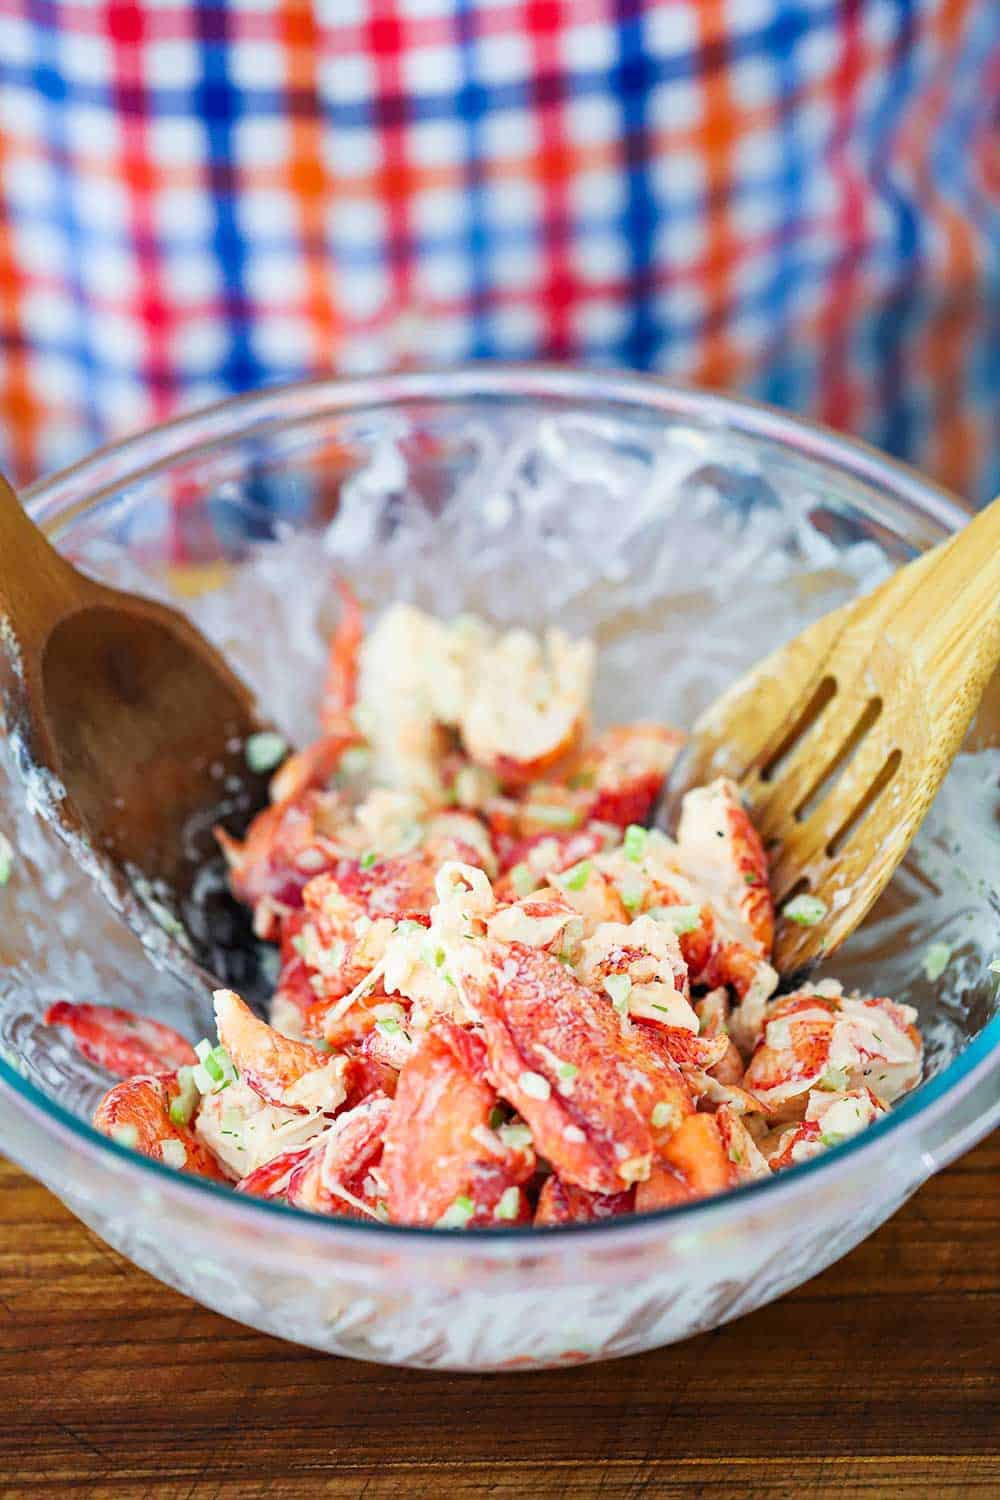 A glass bowl filled with lobster salad that is being tossed by a couple of wooden spoons.